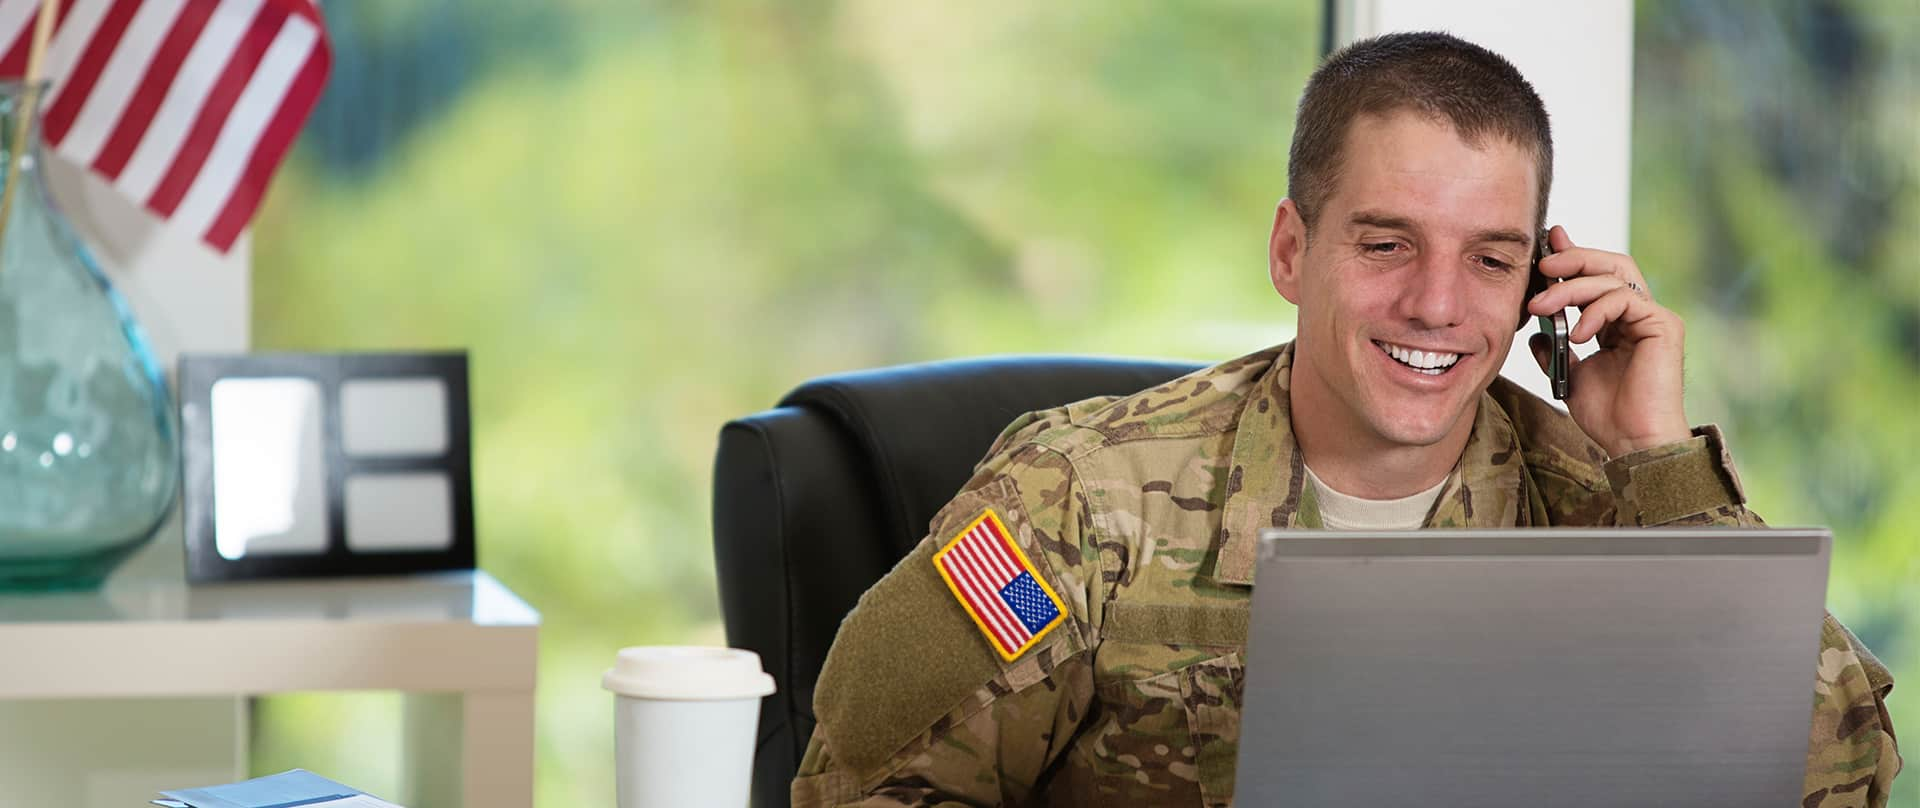 7 Reasons To Hire Military Veterans